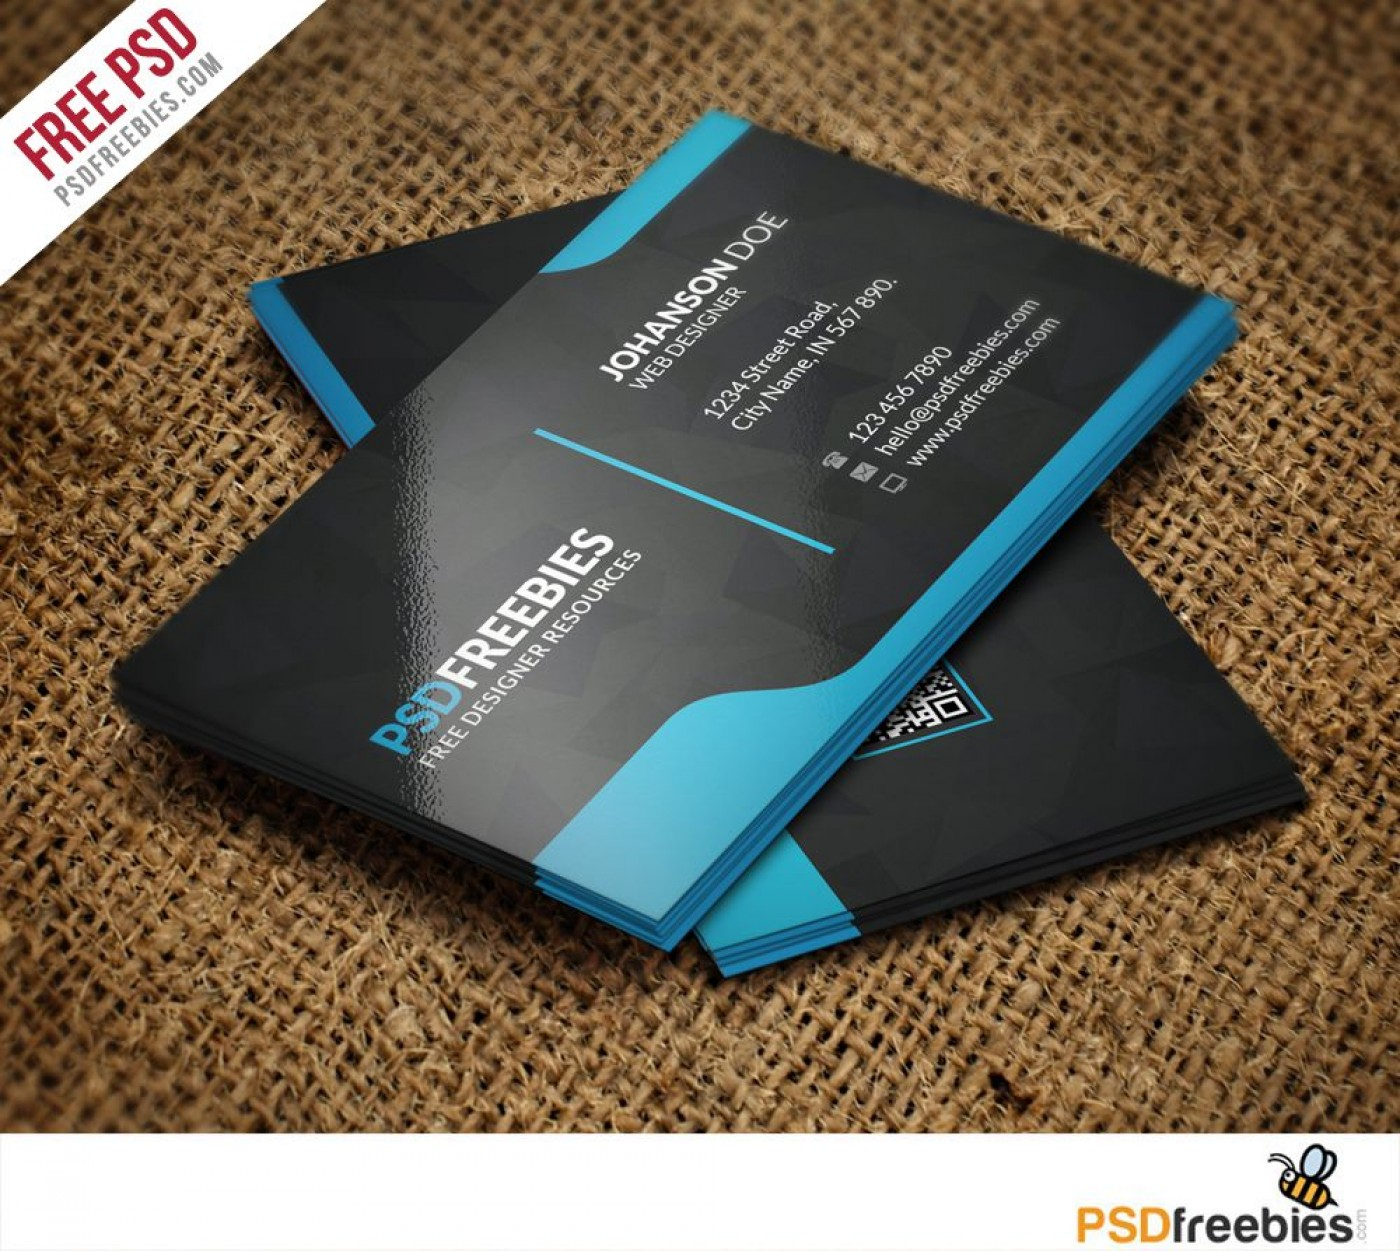 006 Incredible Download Busines Card Template Picture  For Microsoft Publisher Adobe Illustrator Visiting Psd1400